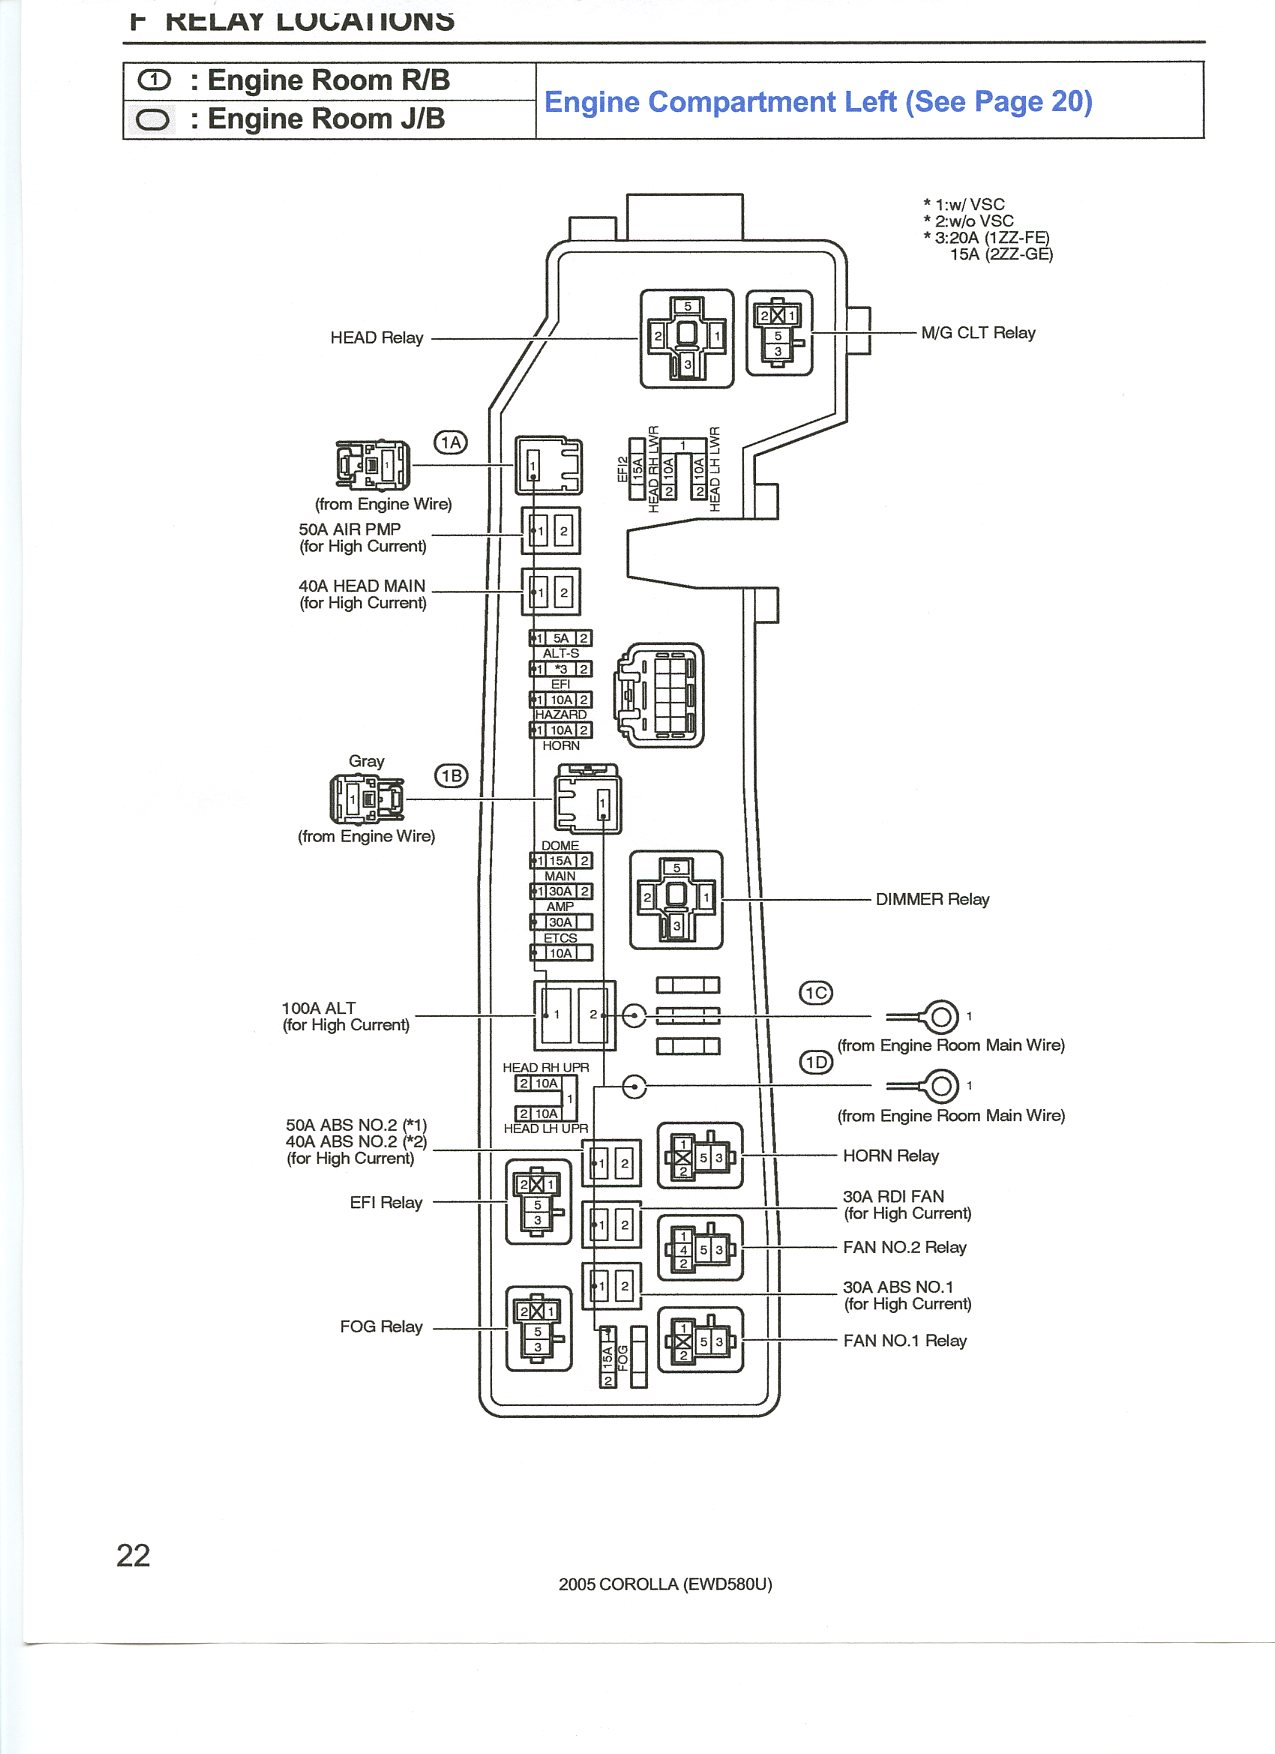 06 toyota corolla fuse box location detailed schematic diagrams rh 4rmotorsports com 06 toyota corolla fuse box location 06 toyota corolla fuse box location